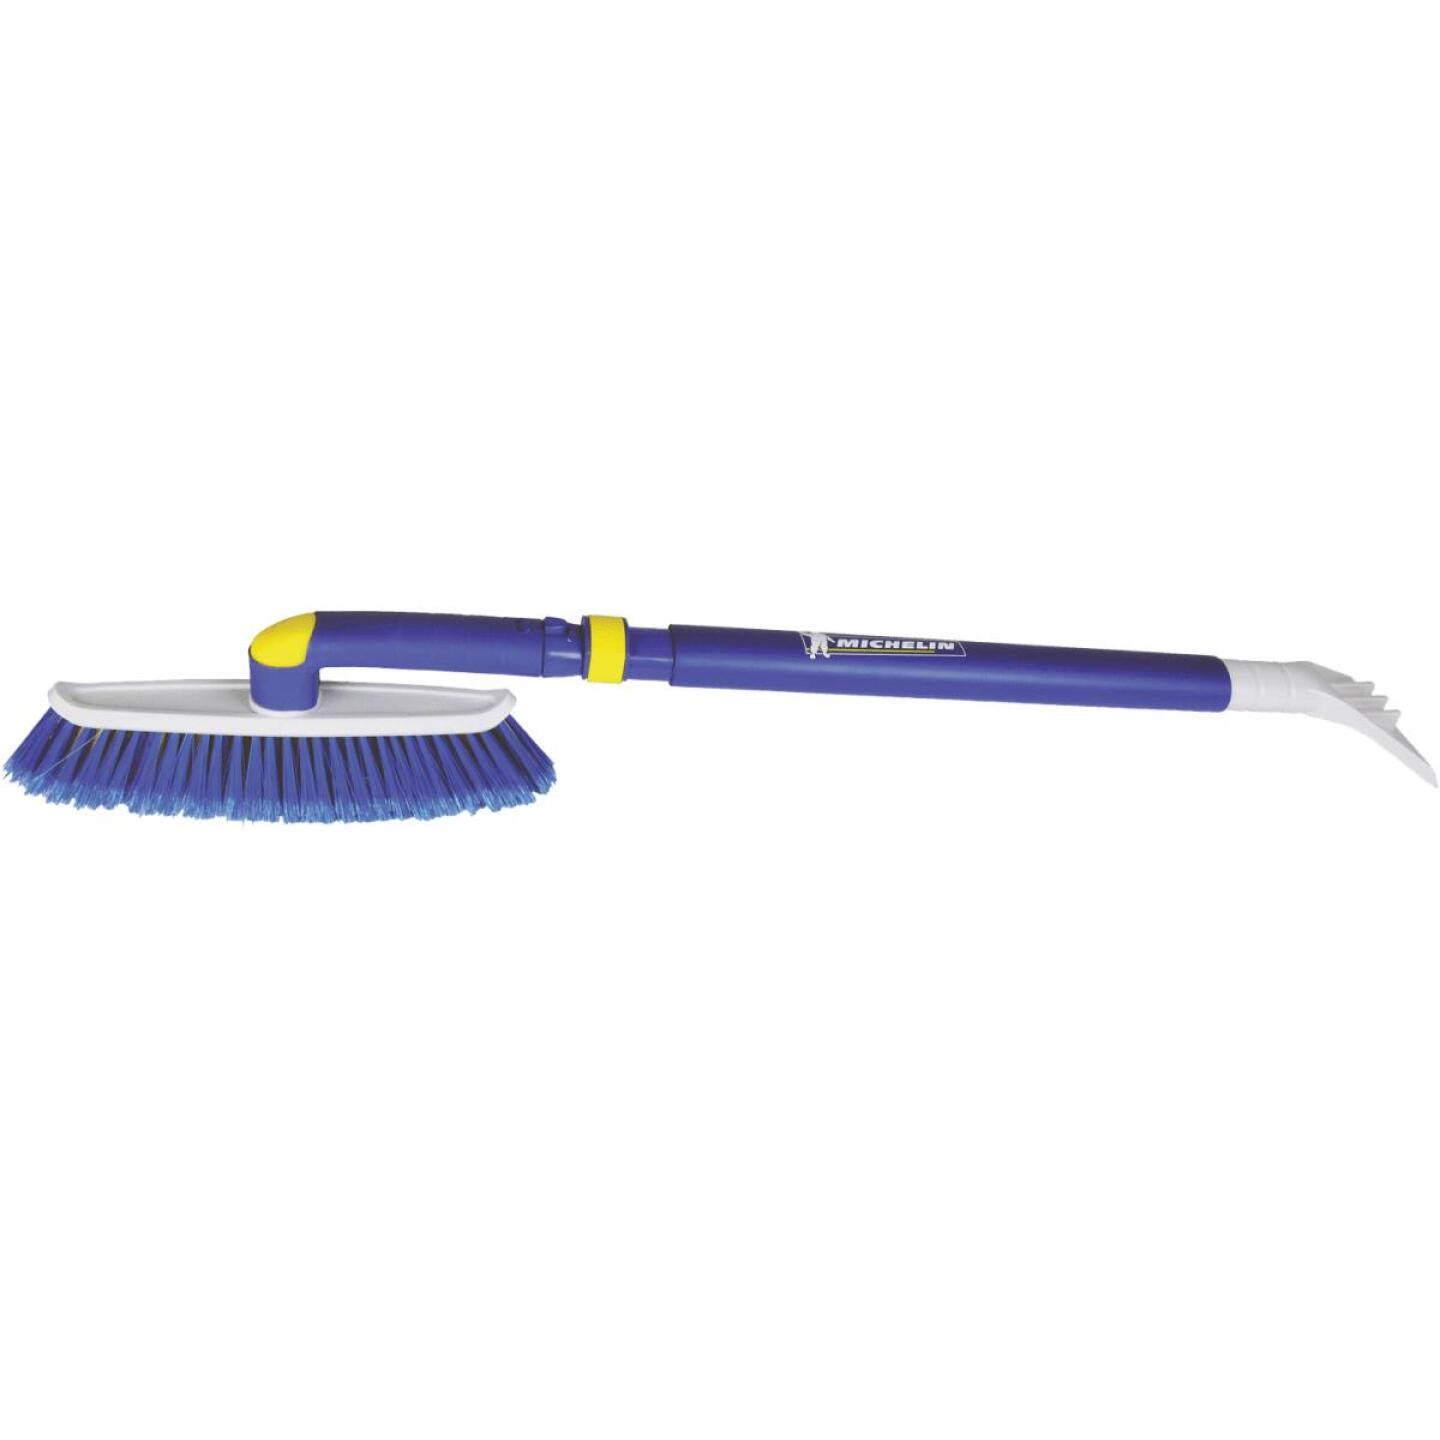 Michelin 48 In. Steel Extender Snowbrush with Ice Scraper Image 1